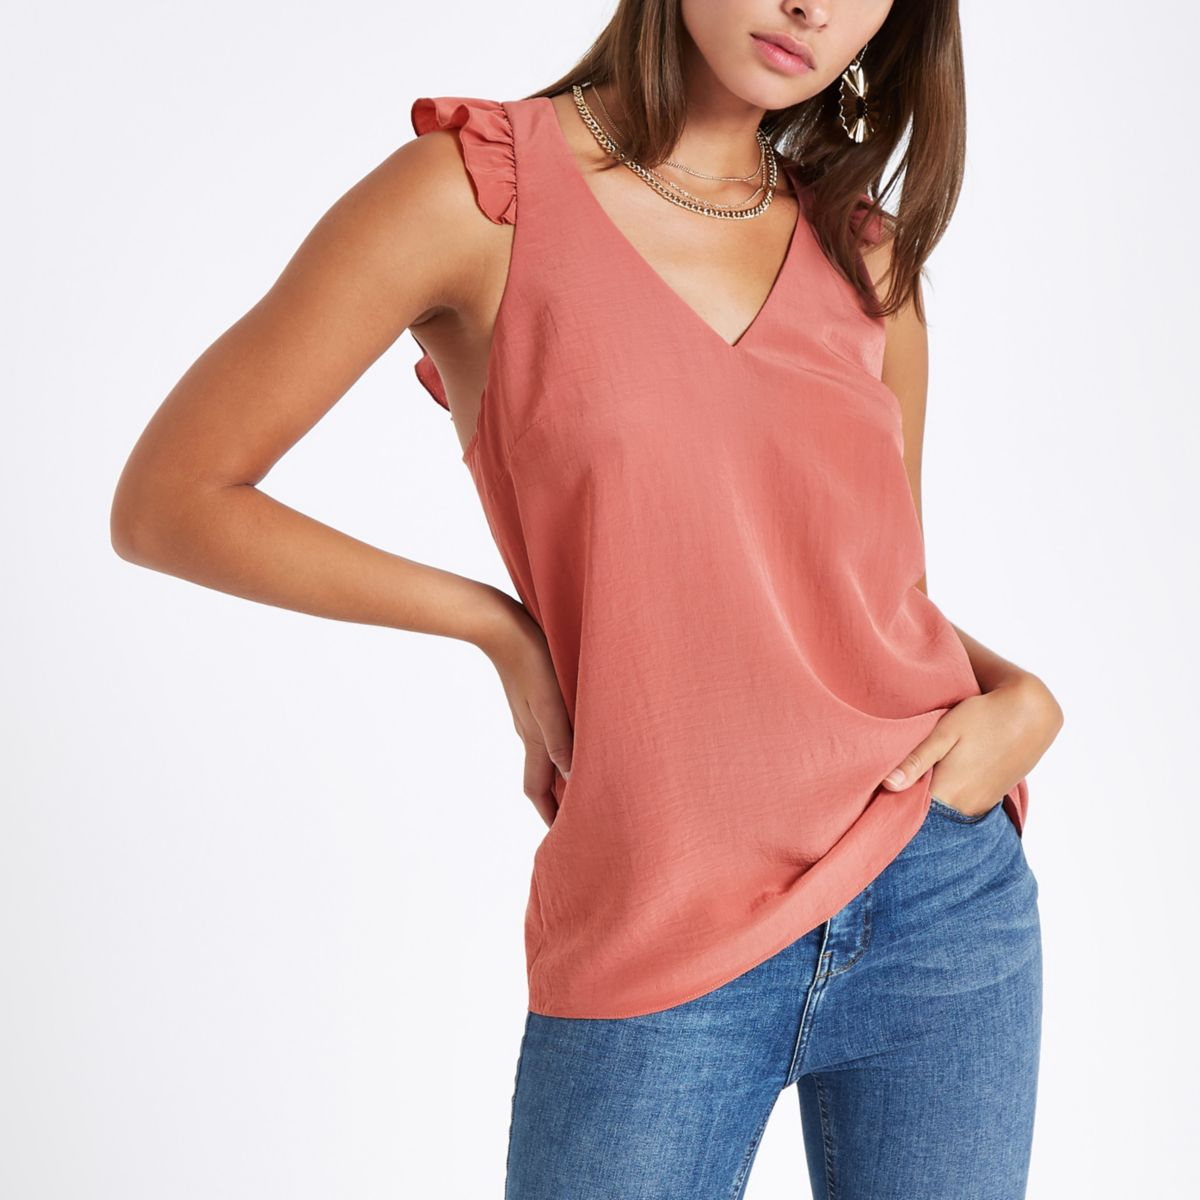 Coral frill shoulder and back sleeveless top